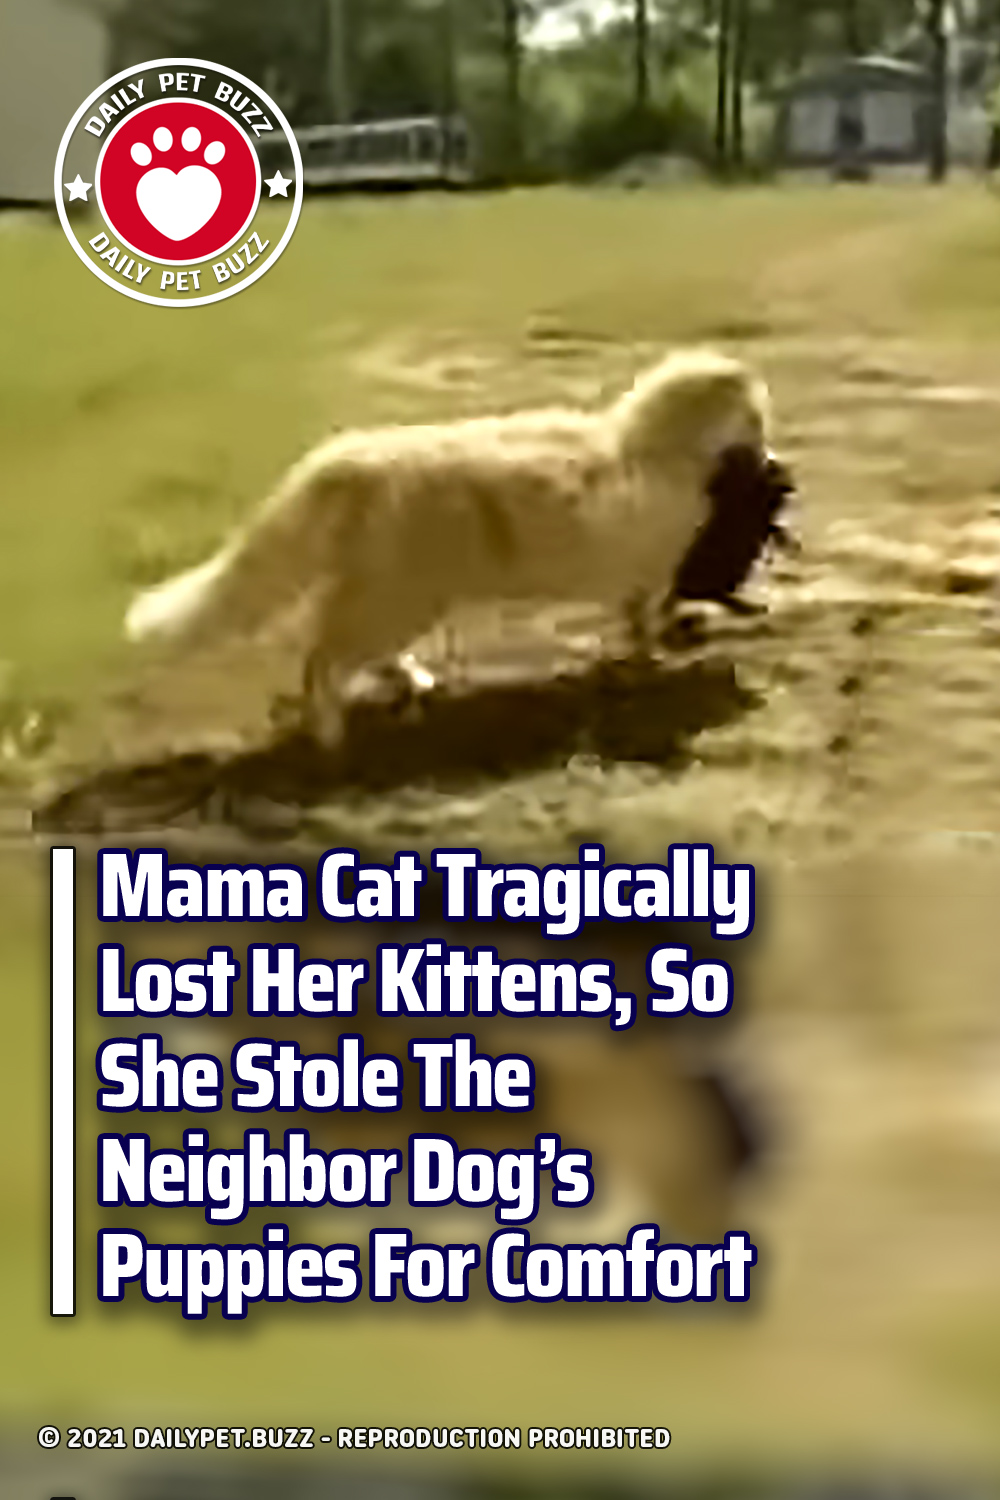 Mama Cat Tragically Lost Her Kittens, So She Stole The Neighbor Dog\'s Puppies For Comfort